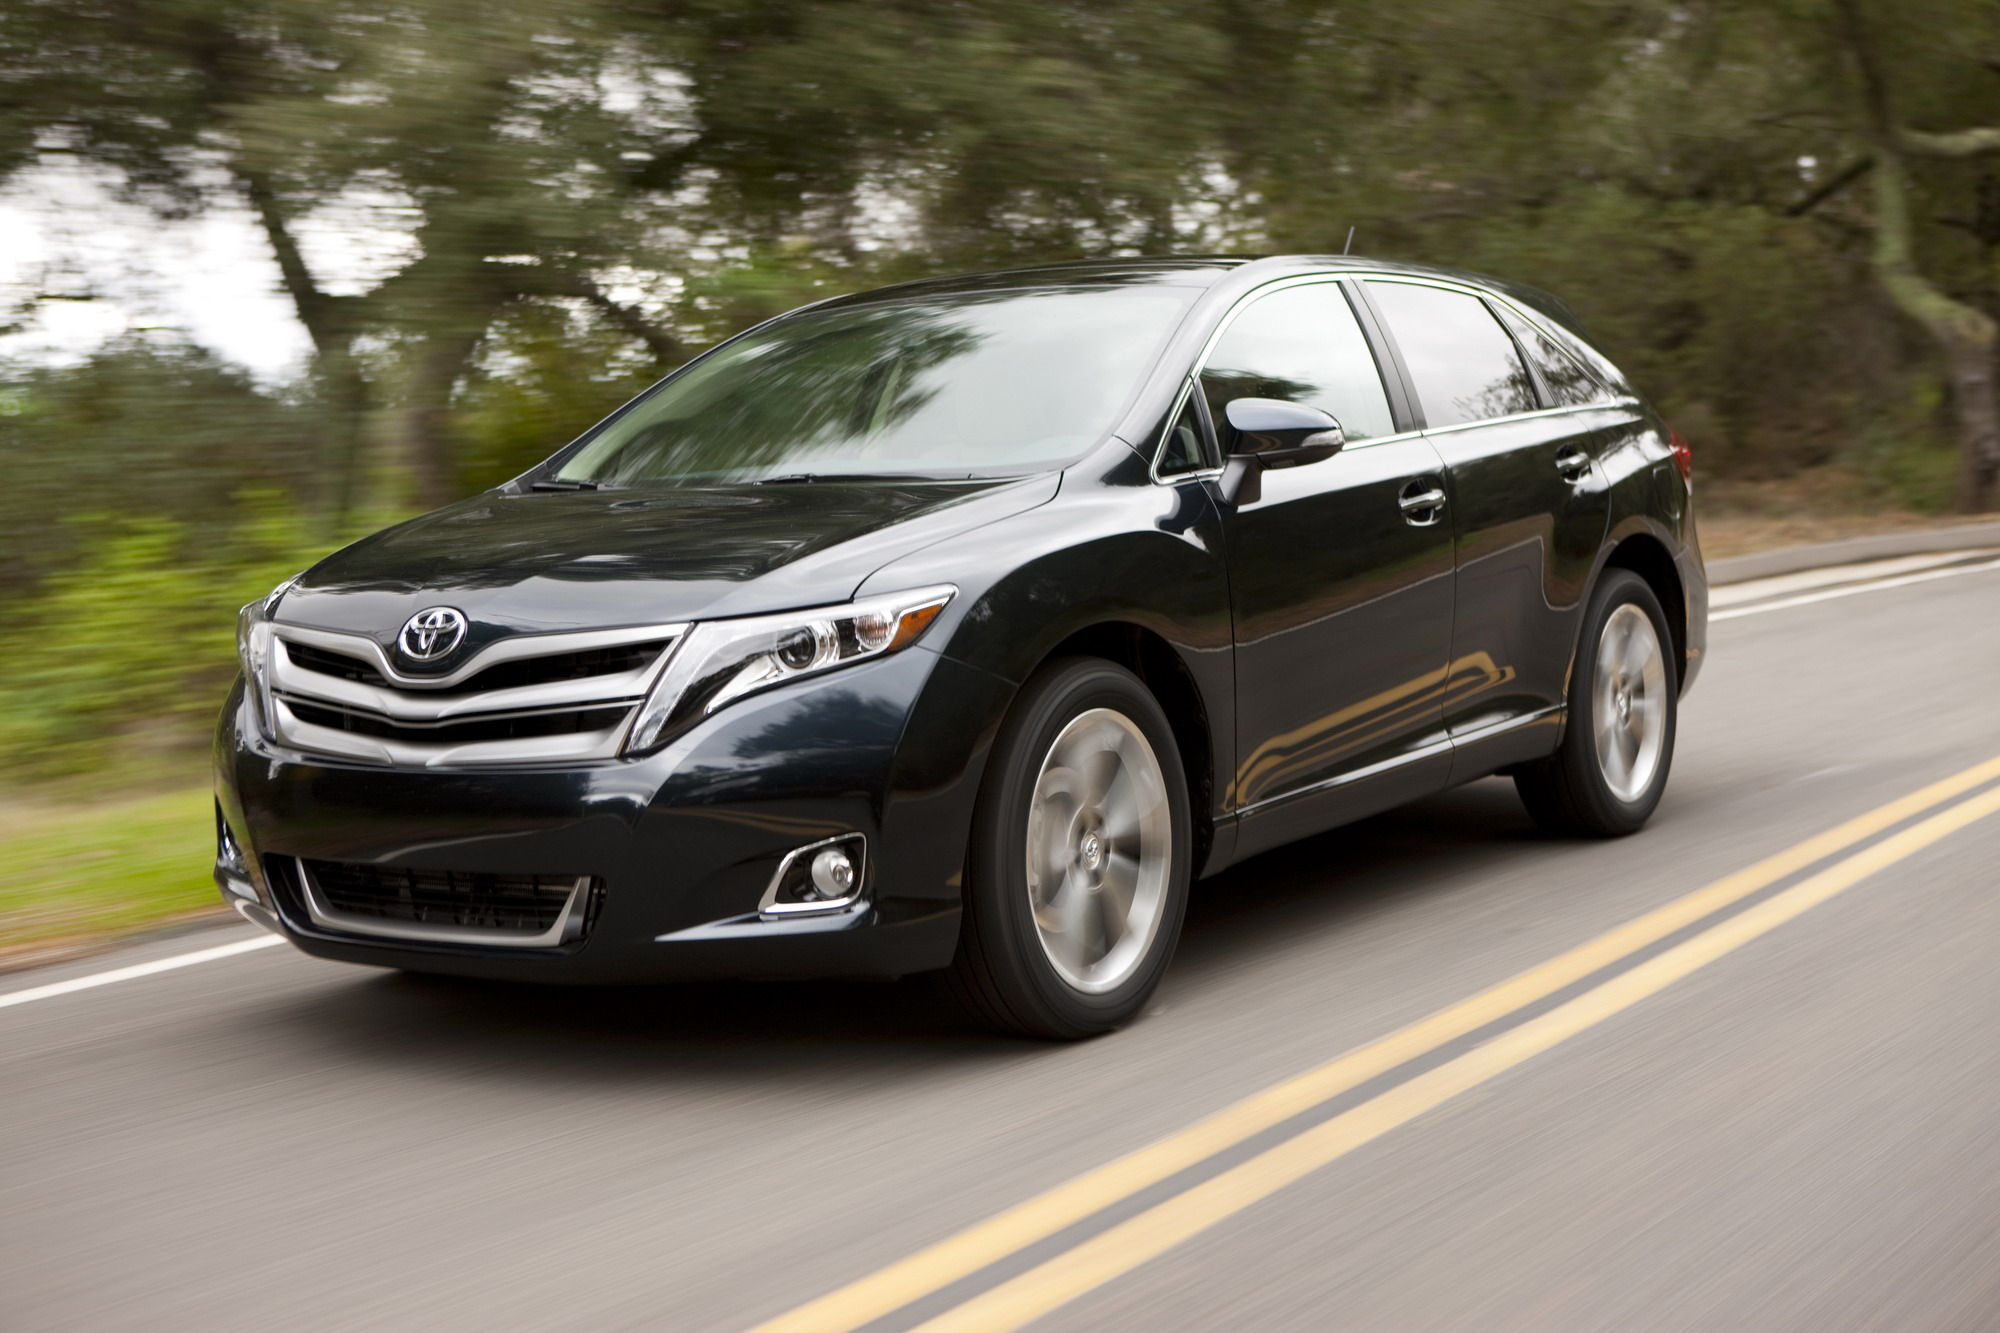 2013 toyota venza top speed. Black Bedroom Furniture Sets. Home Design Ideas